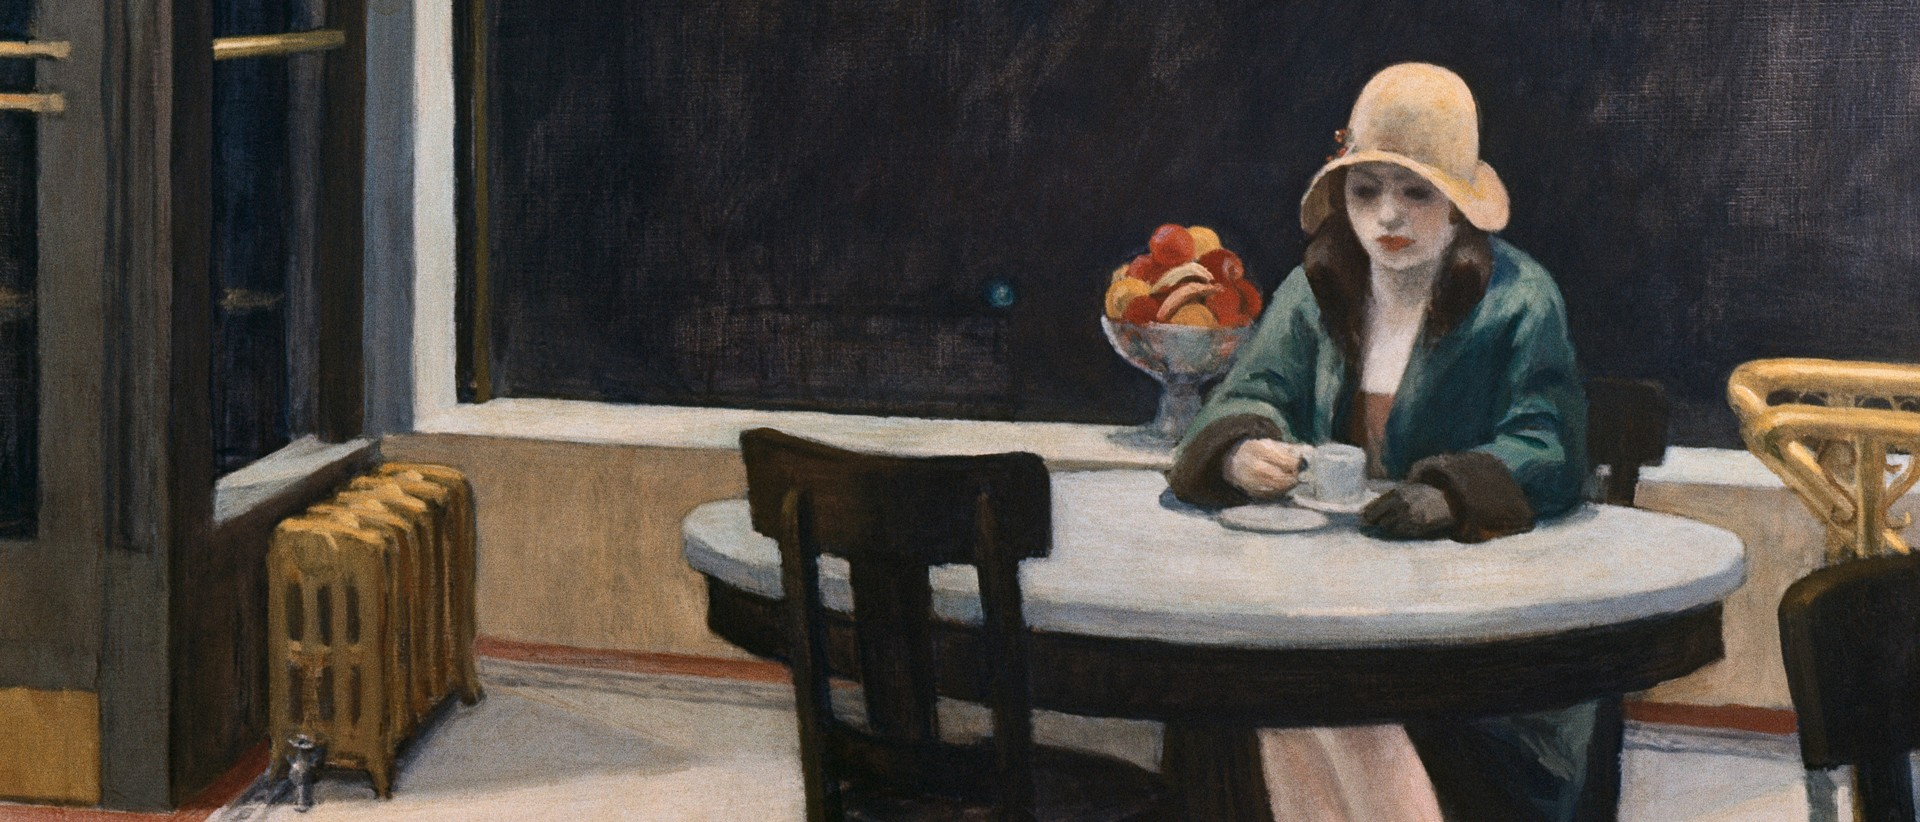 automat edward hopper essay Edward hopper is a quintessentially american painter who is revered for his pastoral oil paintings, snapshots of modern life and deft ability to capture nuanced, natu.